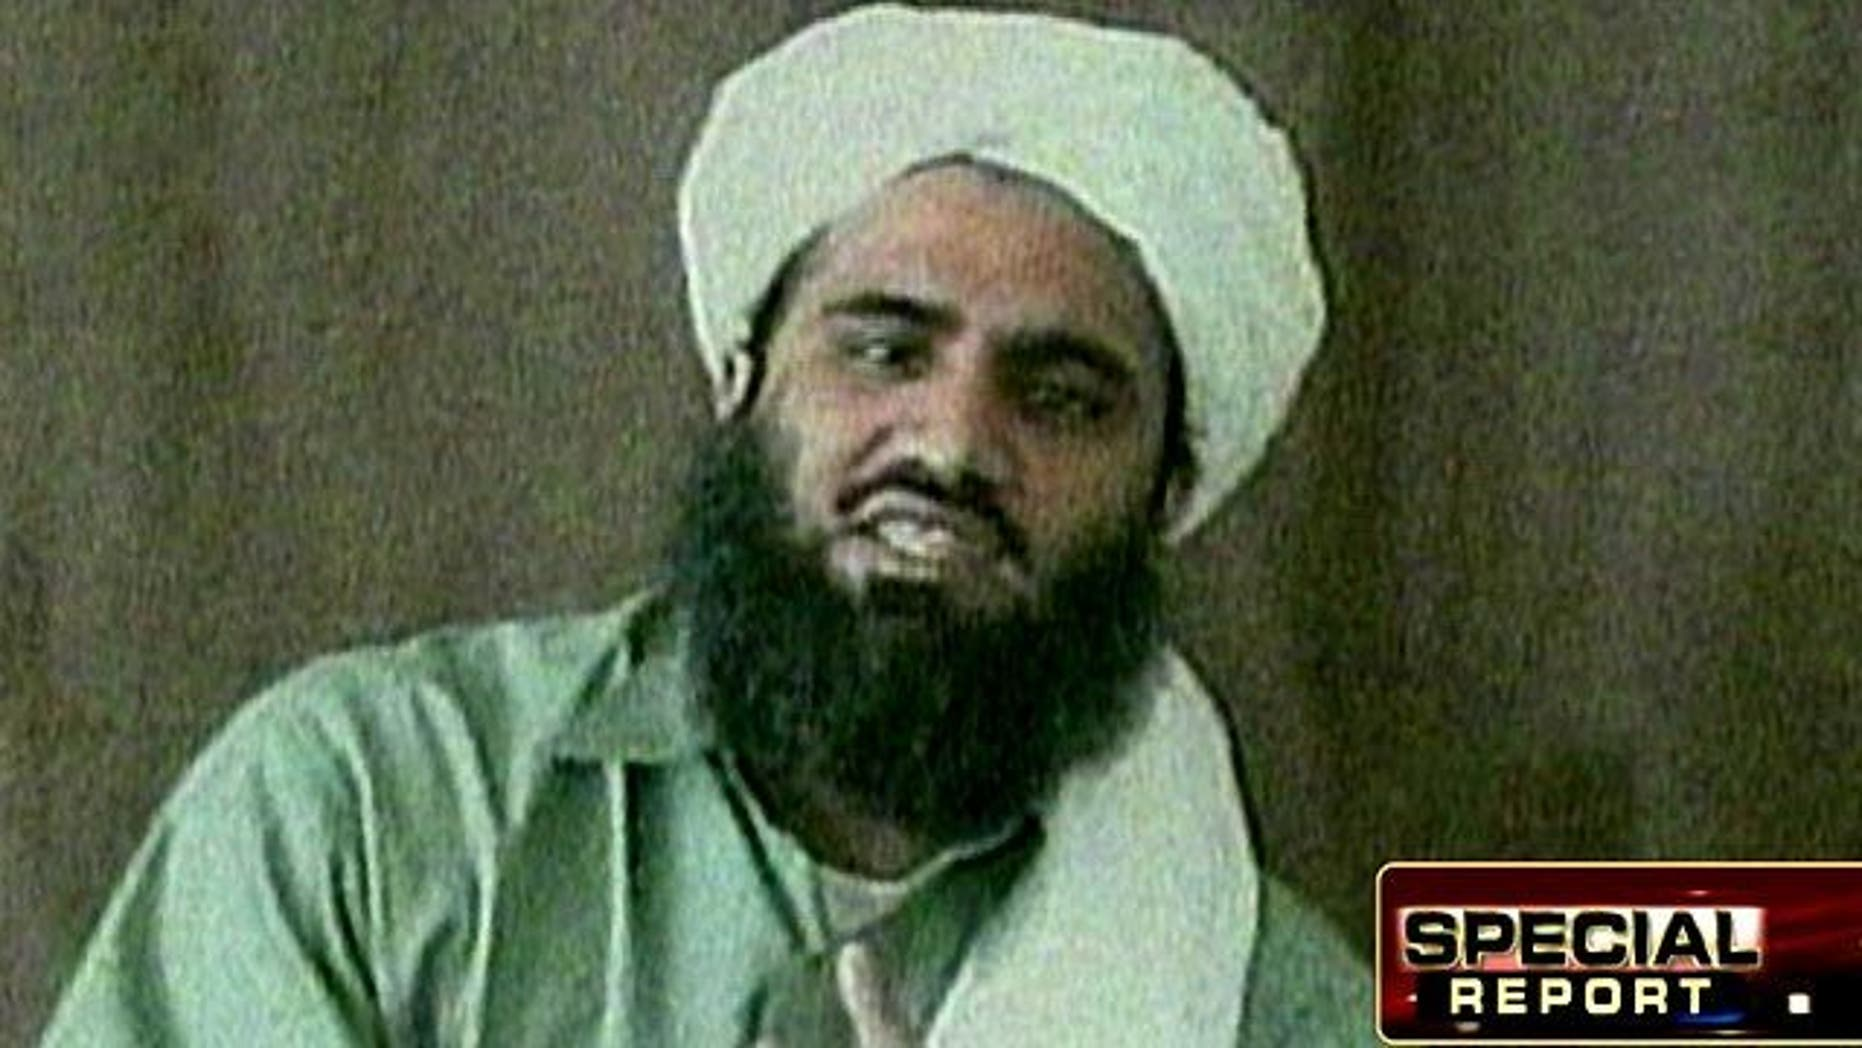 Sulaiman Abu Ghaith, Osama bin Laden's son-in-law and reported longtime member of Al Qaeda.